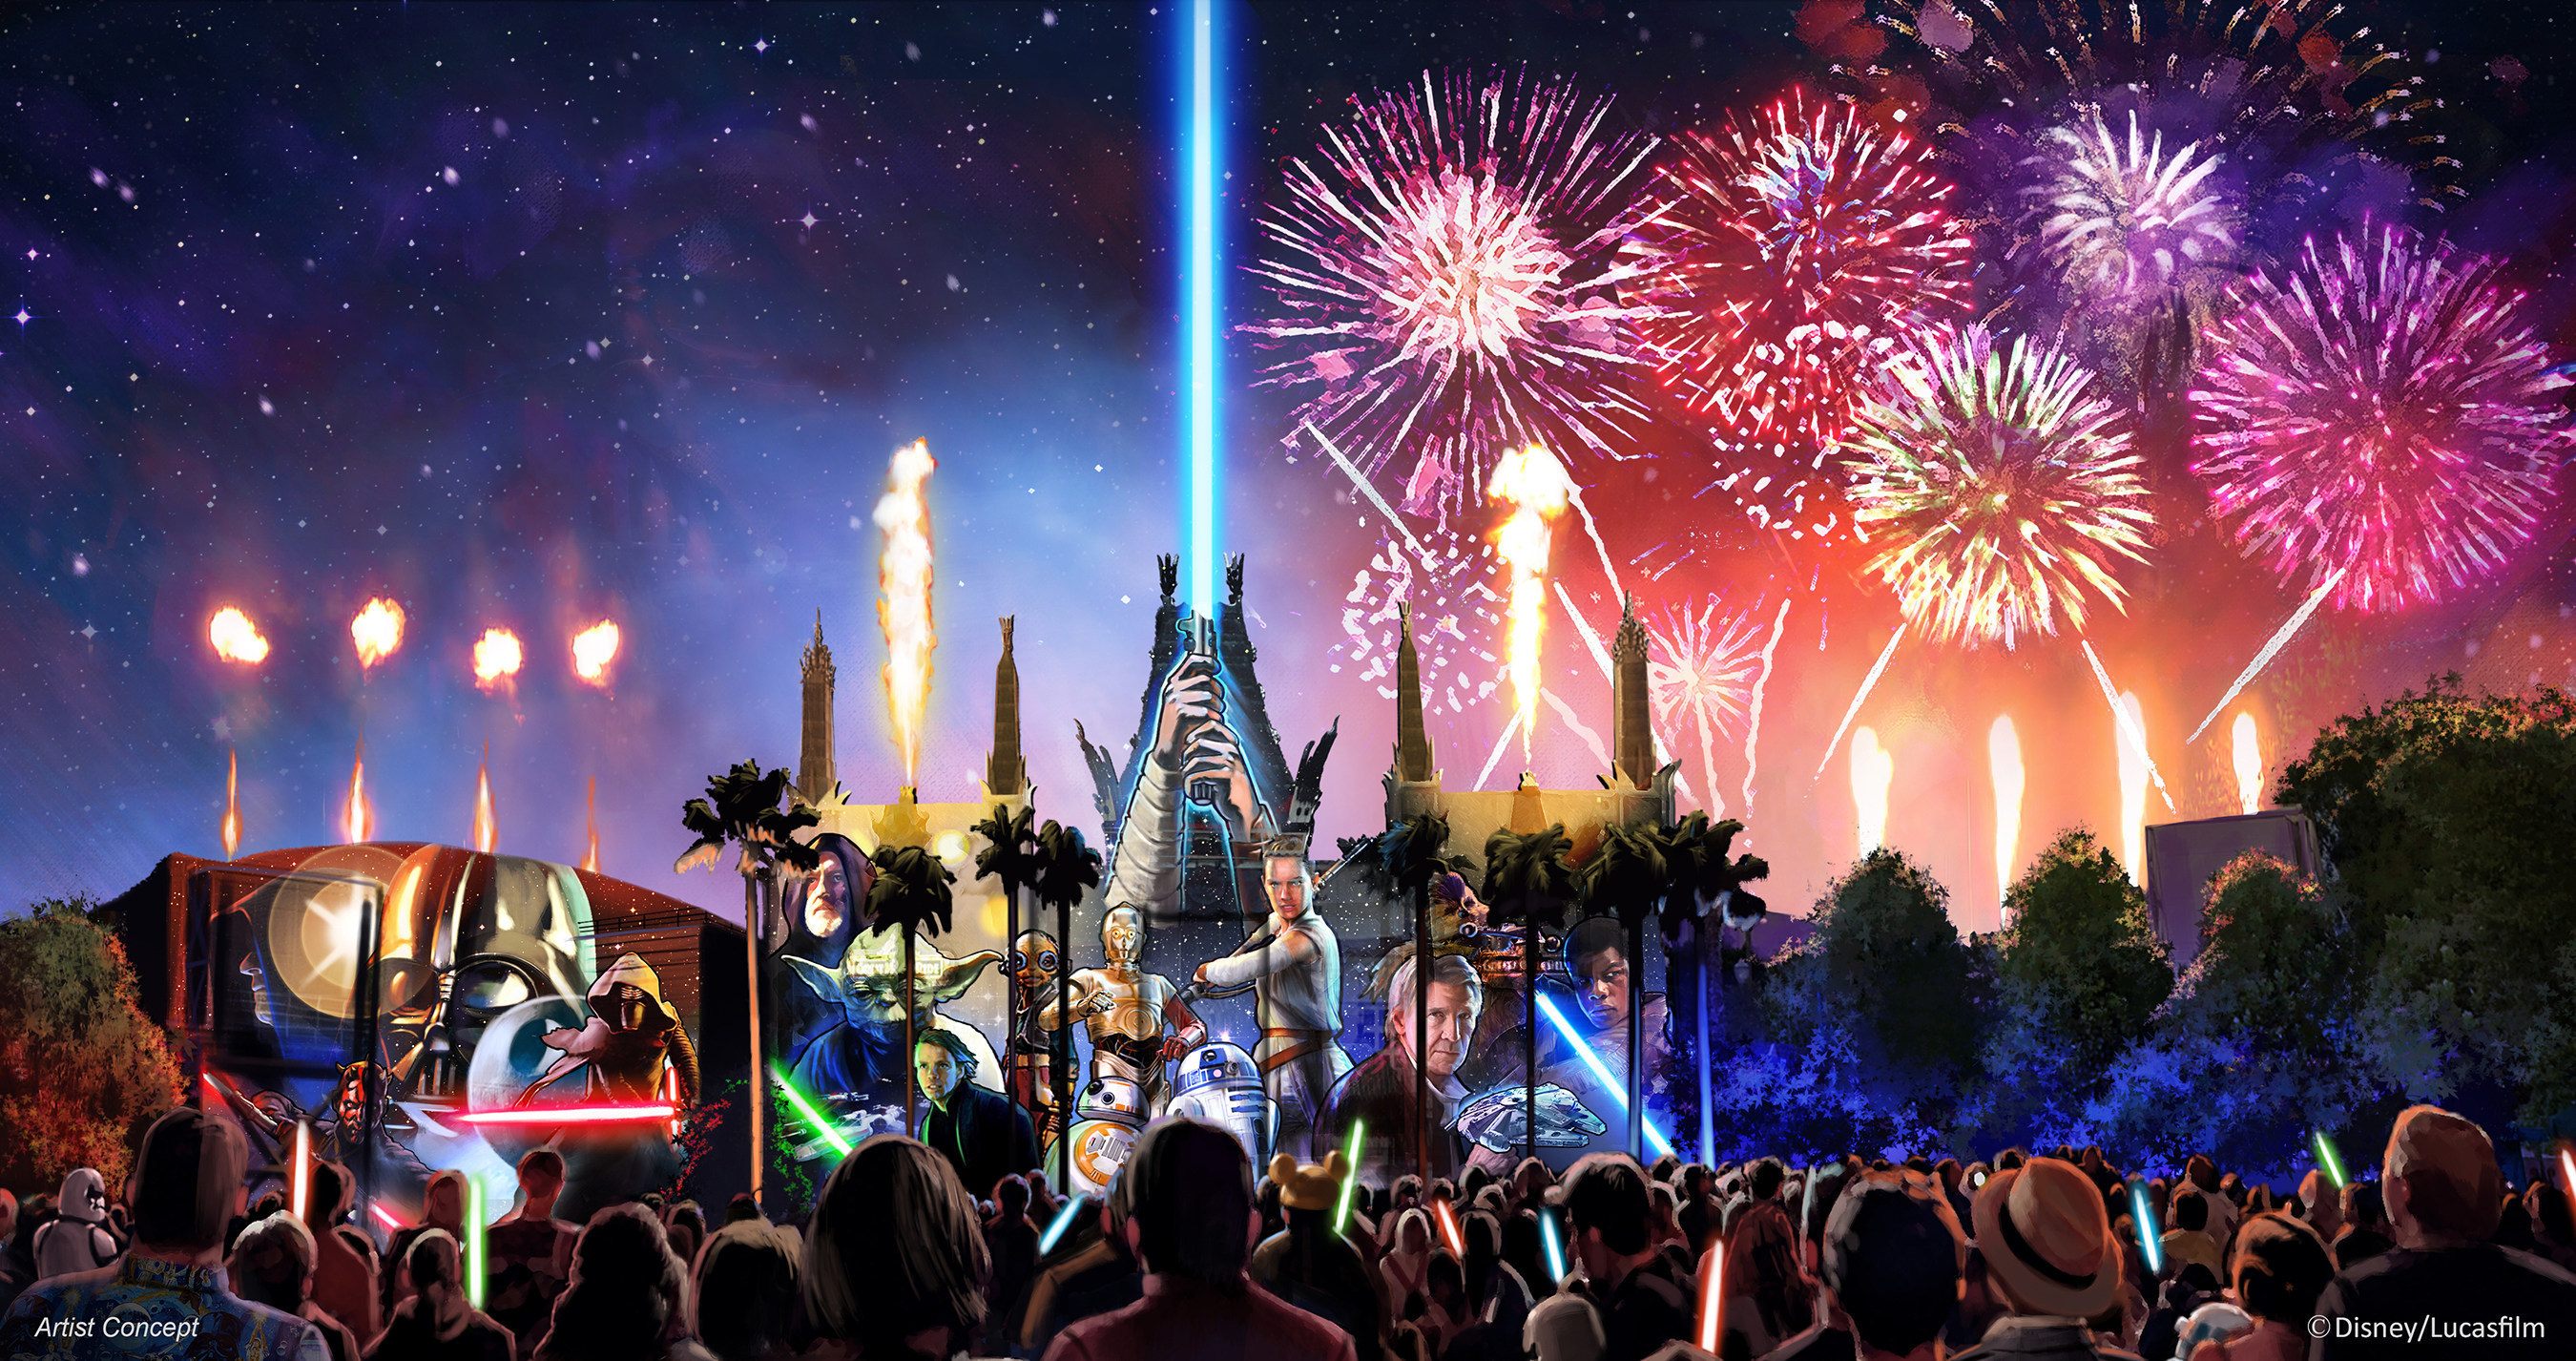 Star Wars Takes to the Skies This Summer in New Blockbuster Nighttime Spectacular at Walt Disney